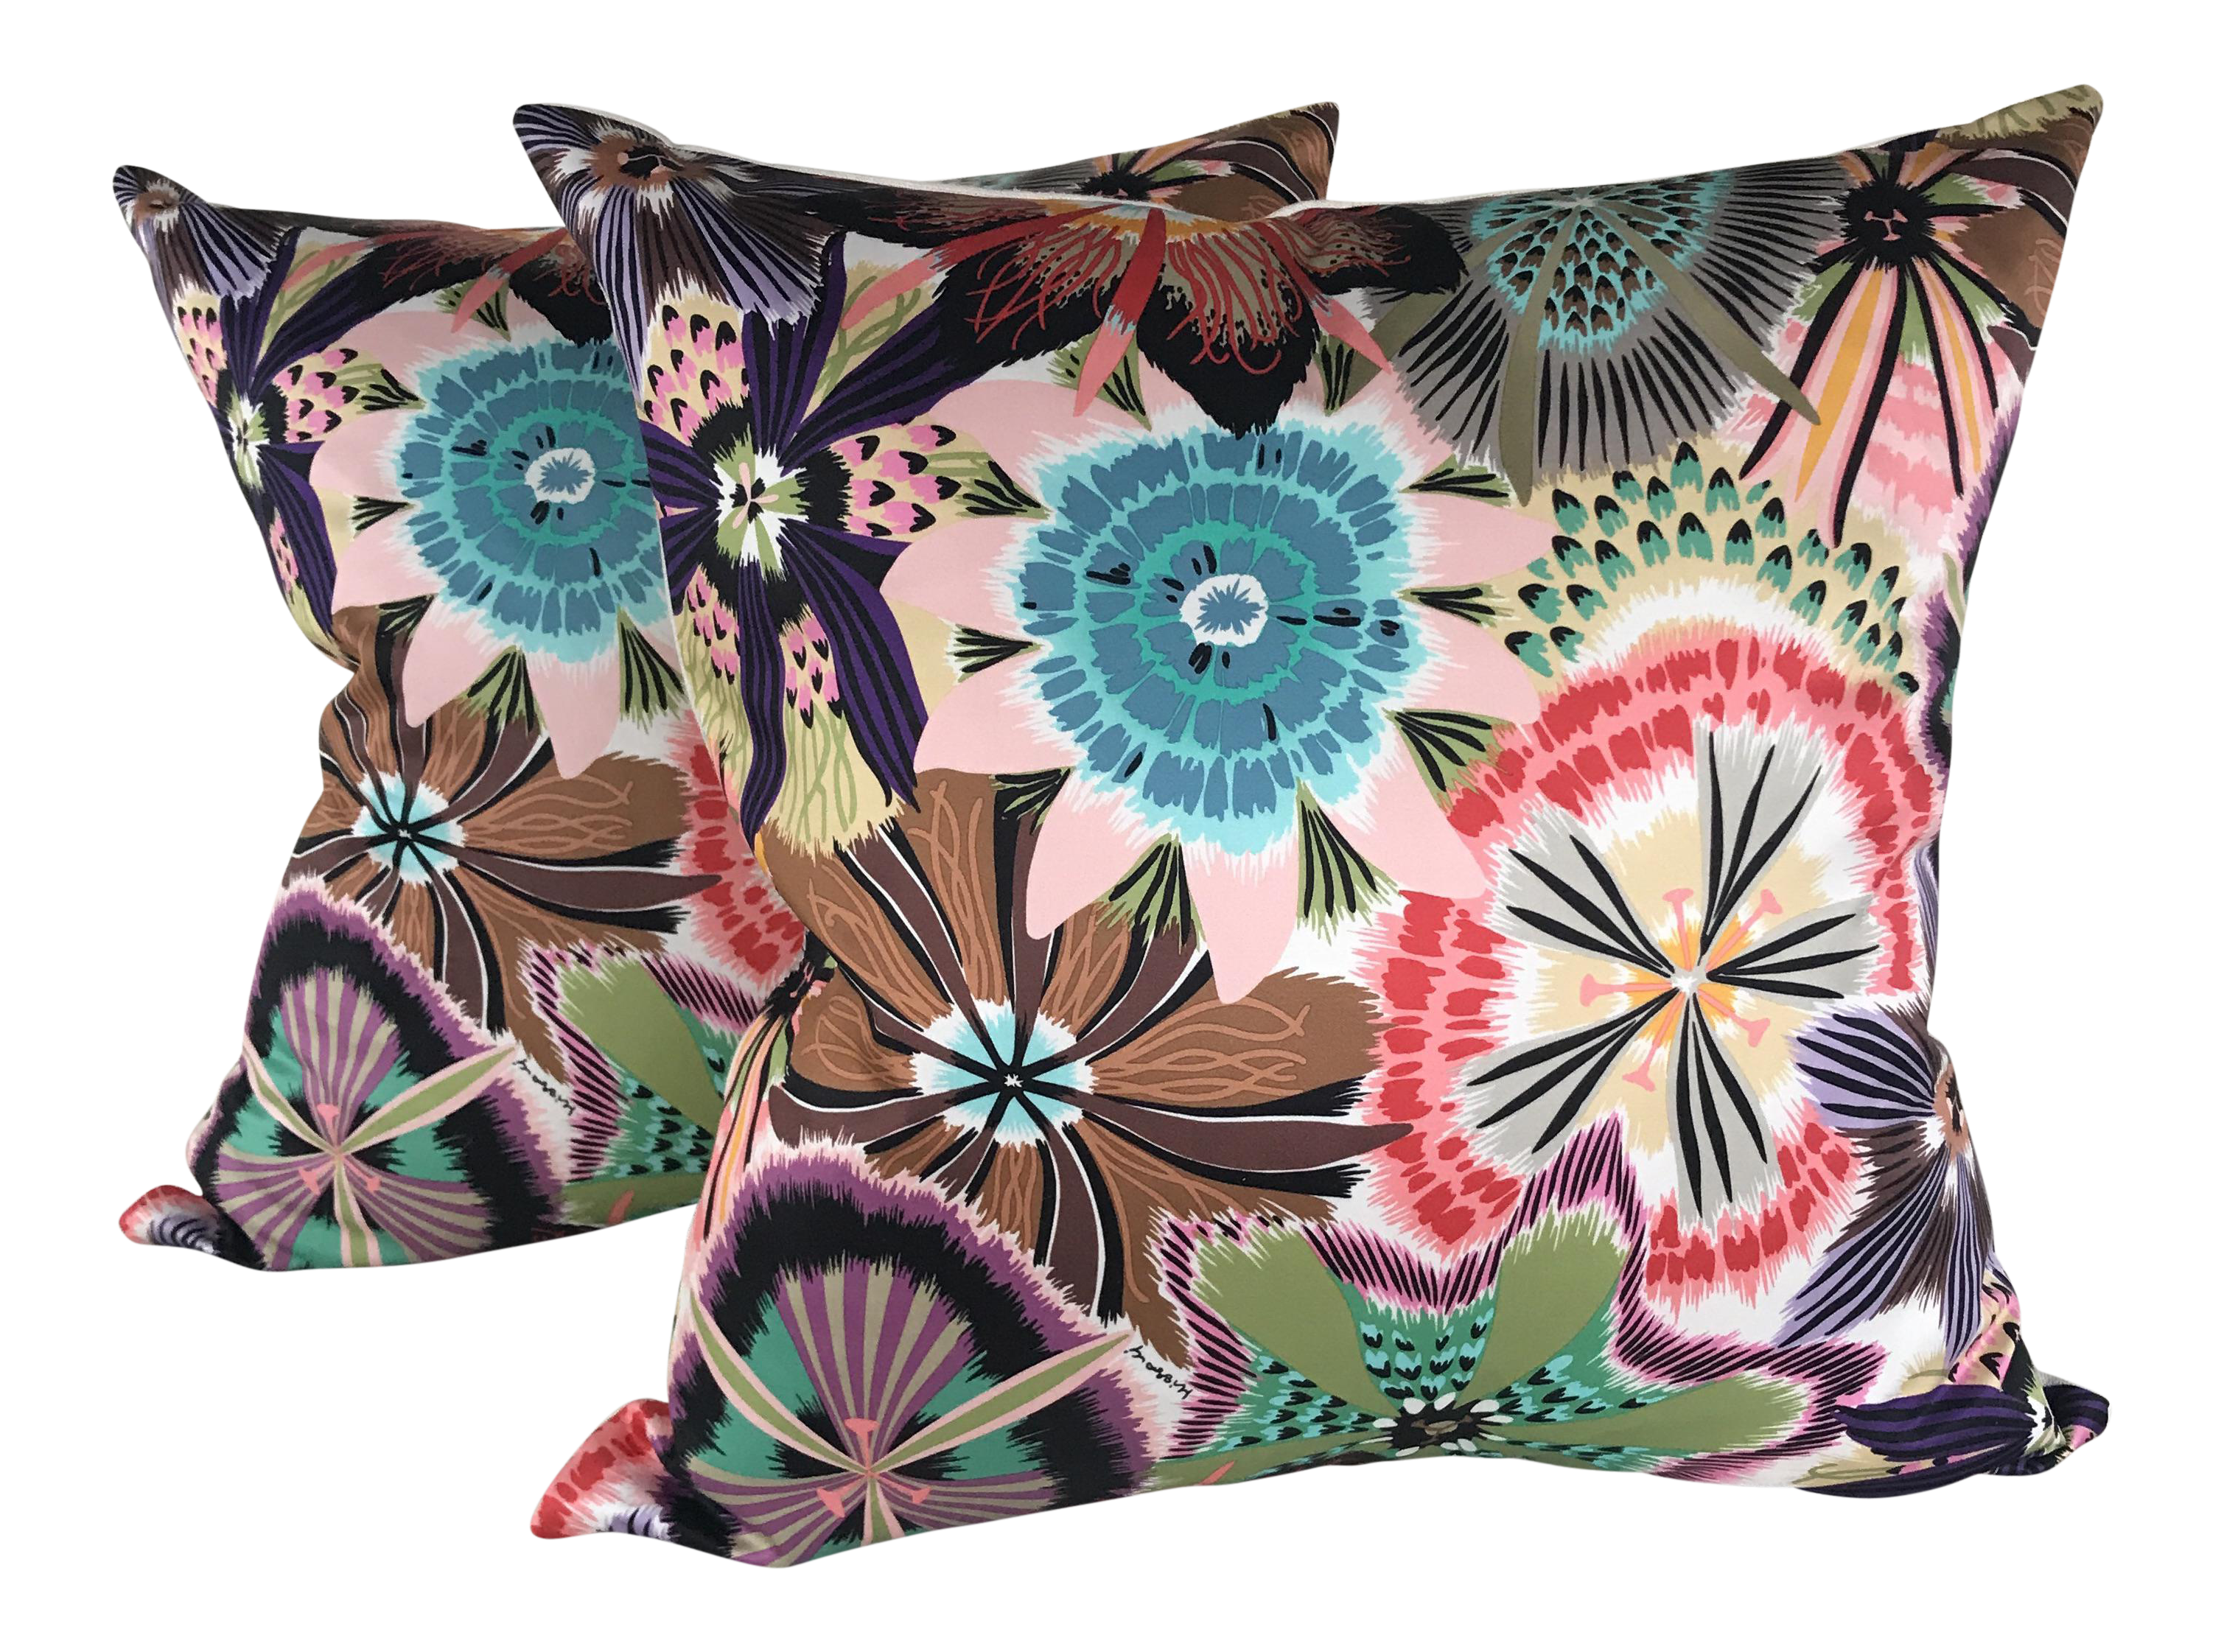 missoni wallpaper home pillows wallpapers group img pillow